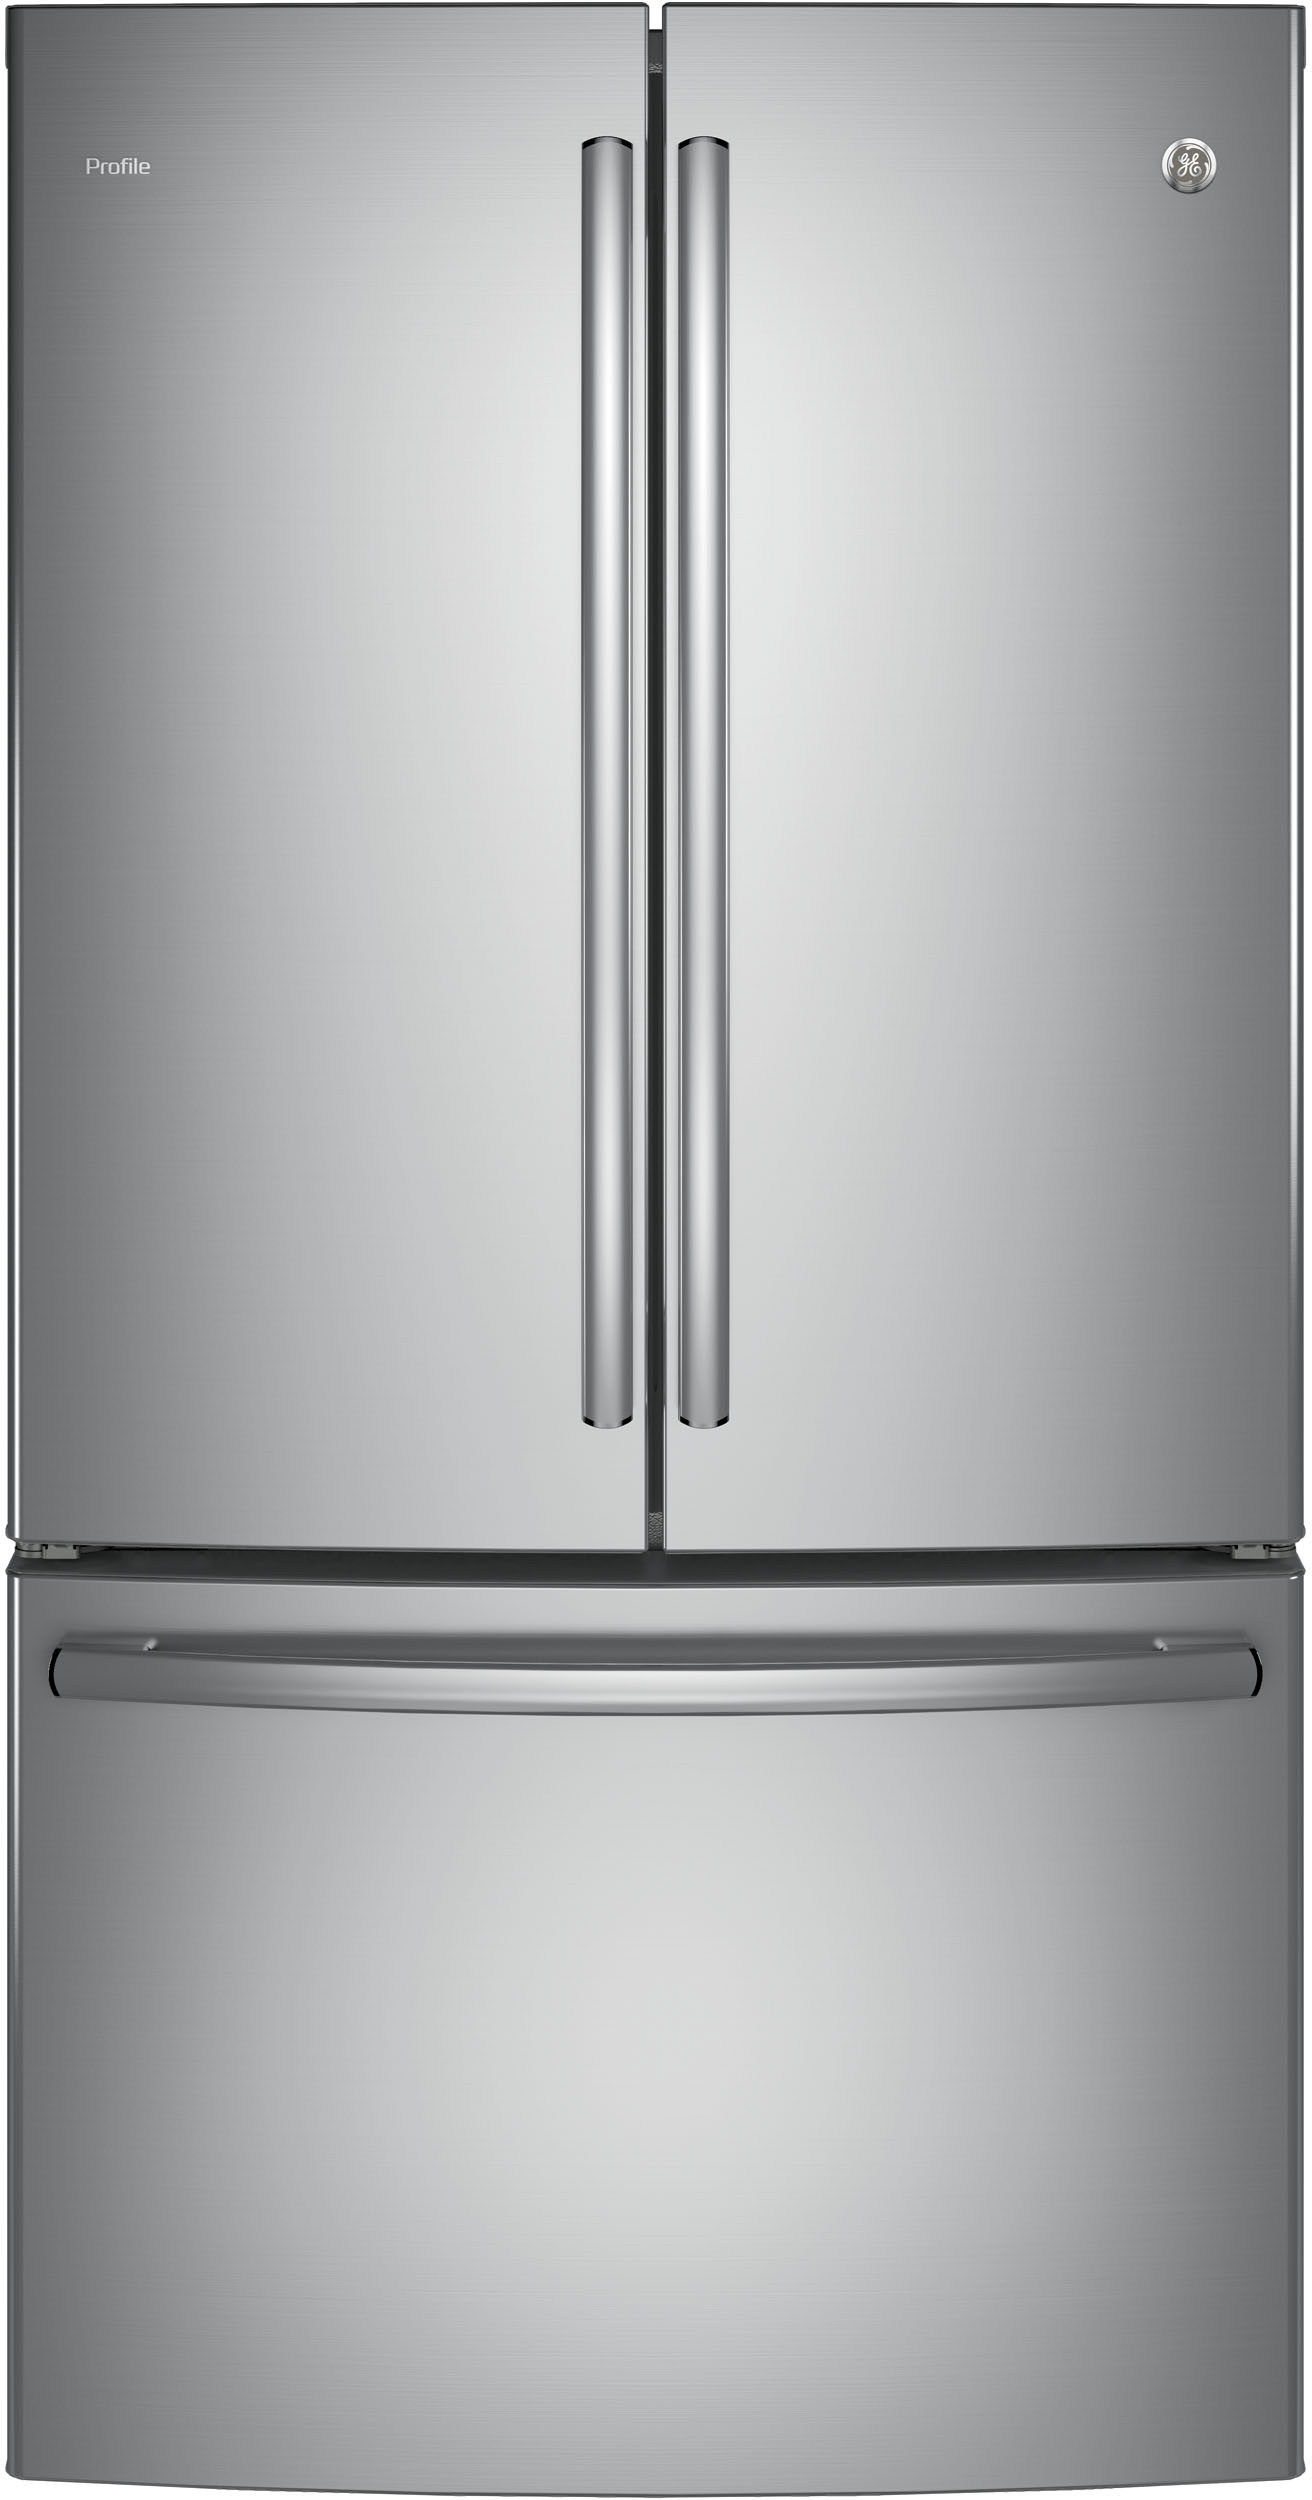 french z refrigerator door ge pcrp stainless com steel pcrichard ft cu doors